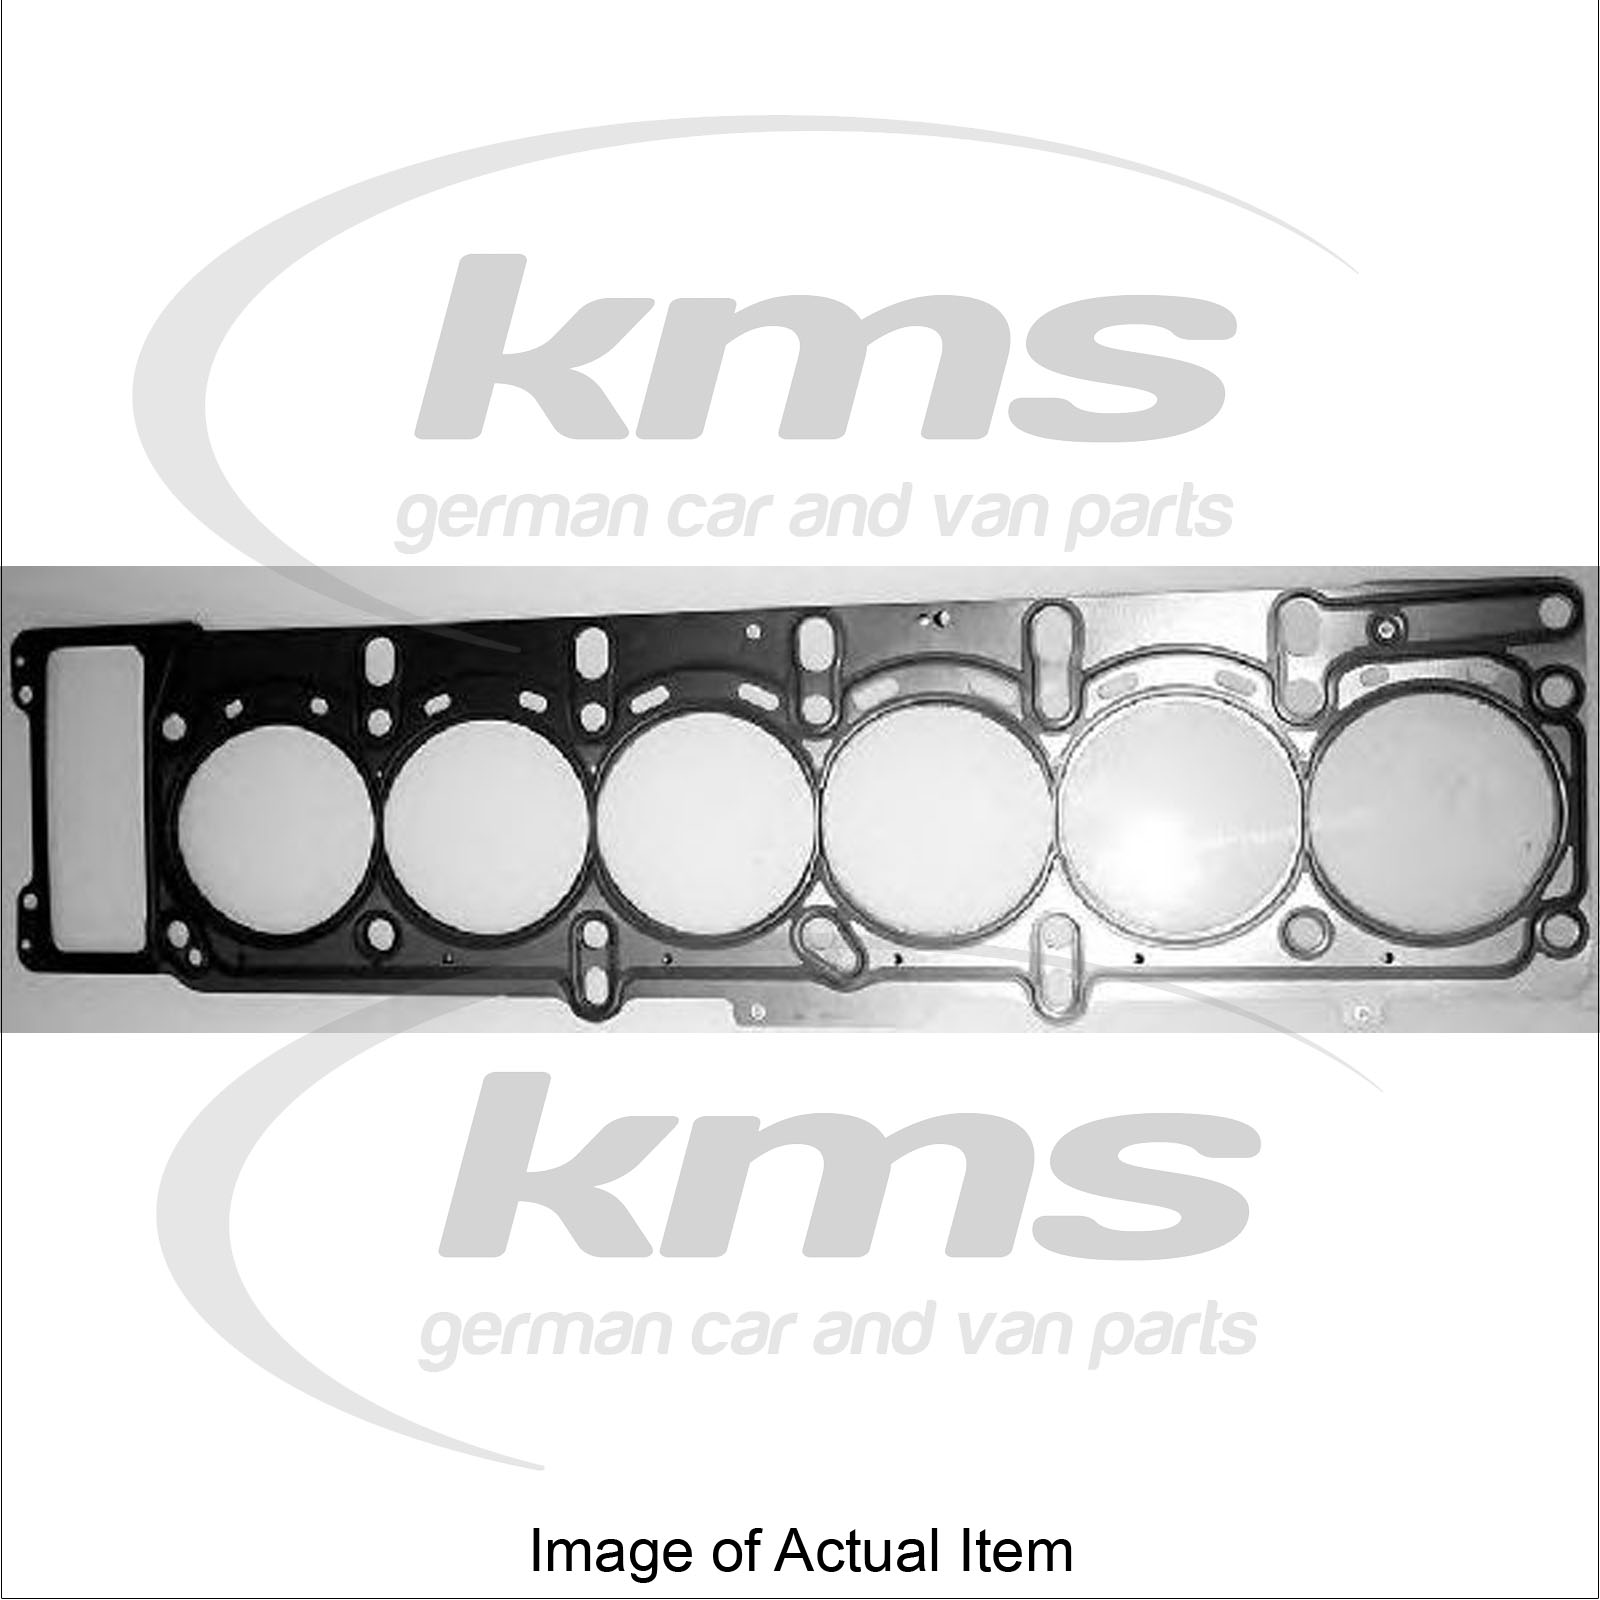 2015 Mini Roadster Head Gasket: Cylinder Head Gasket BMW 3 Convertible E46 M3 3 2